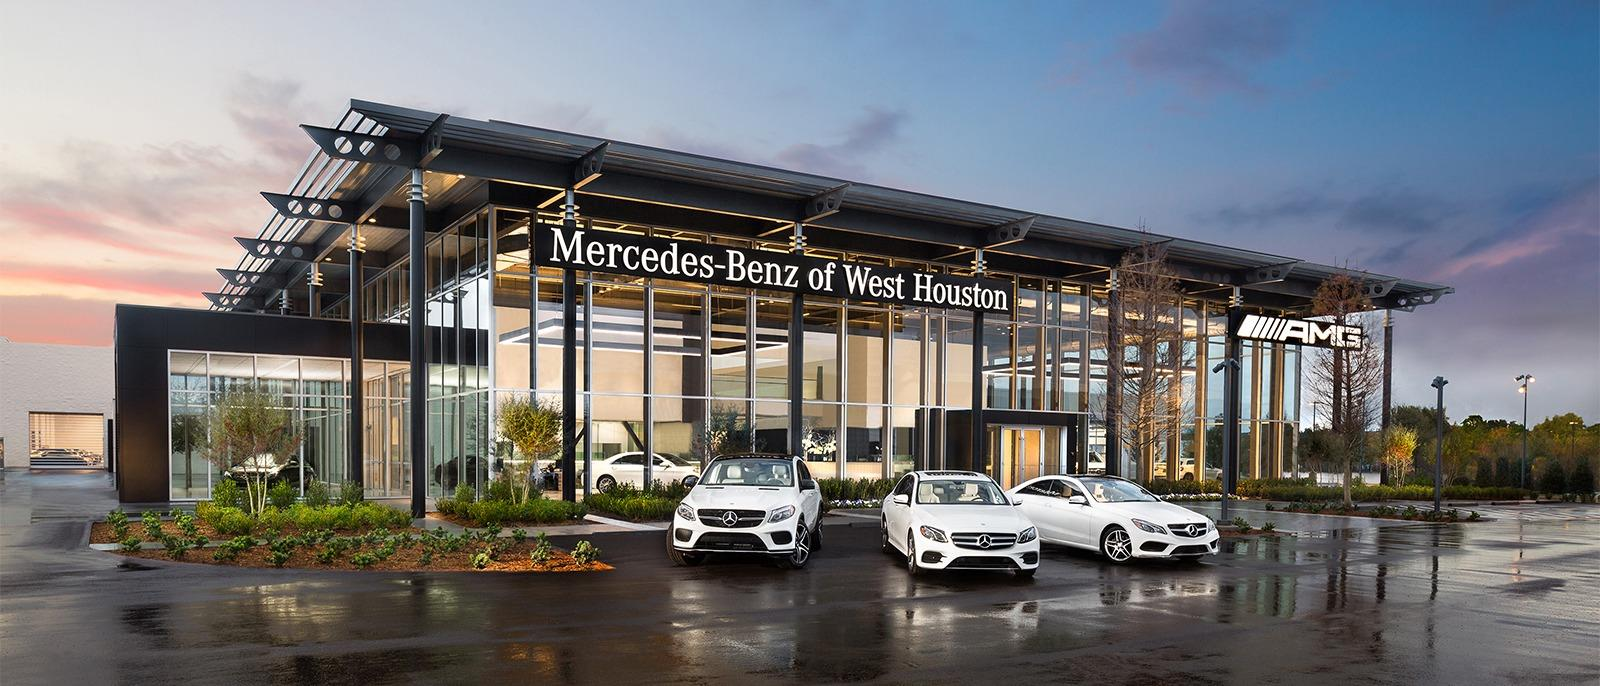 Sewell Mercedes-Benz of West Houston